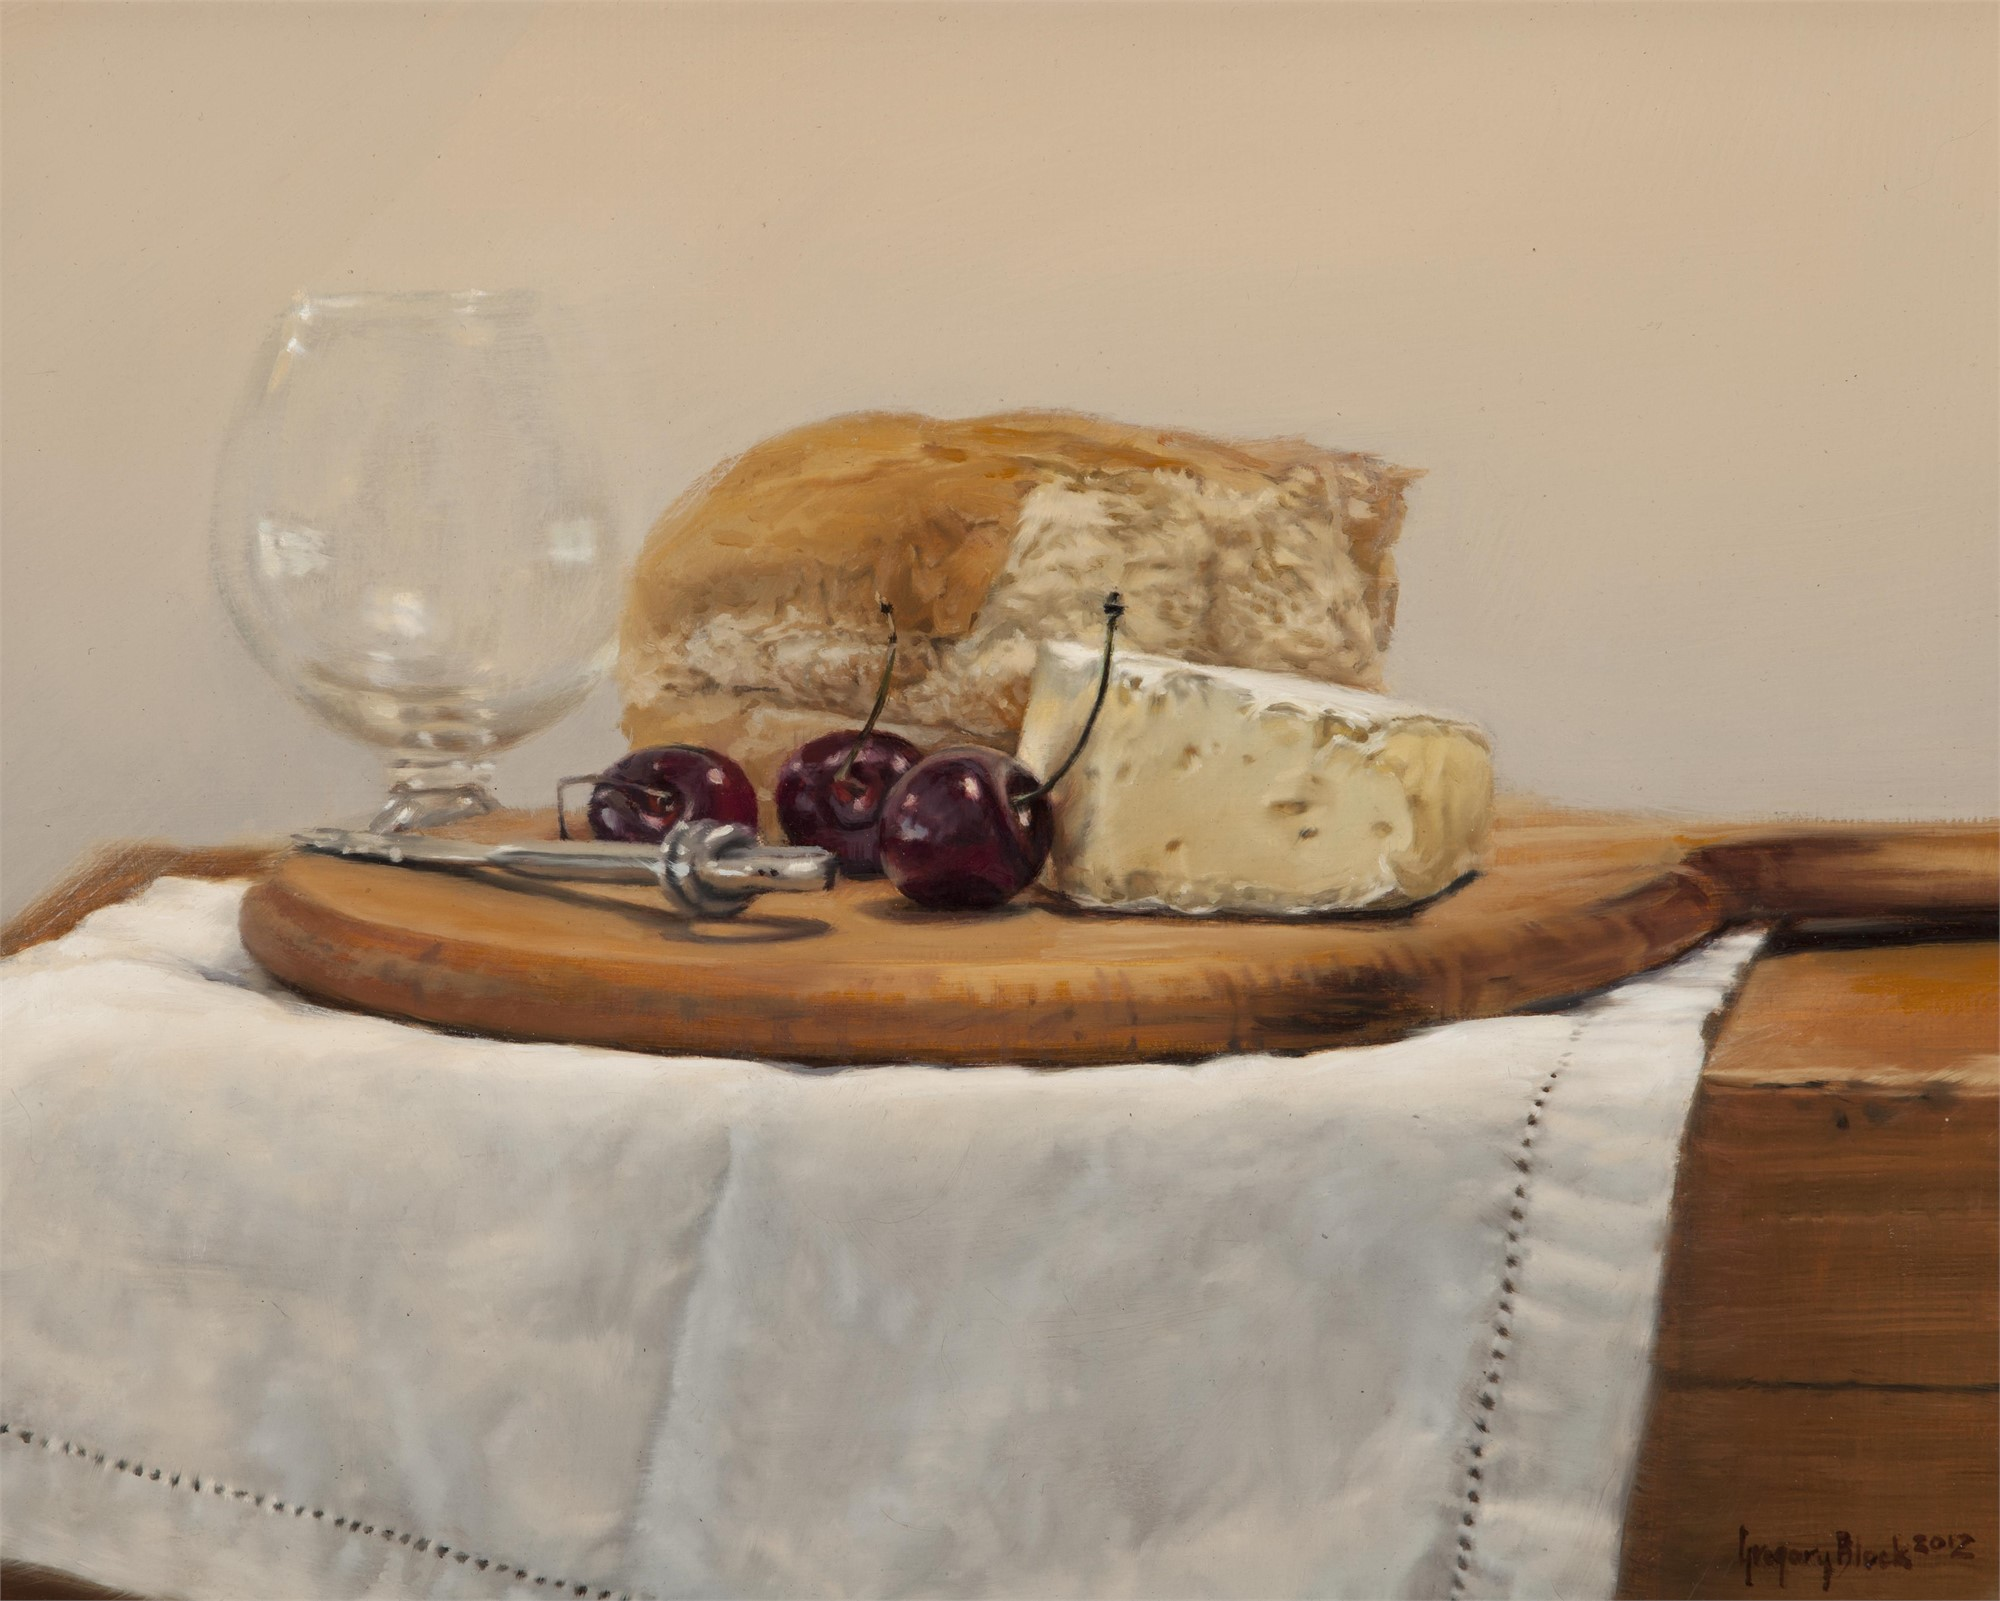 Bread, Brie, and Bings by Gregory Block